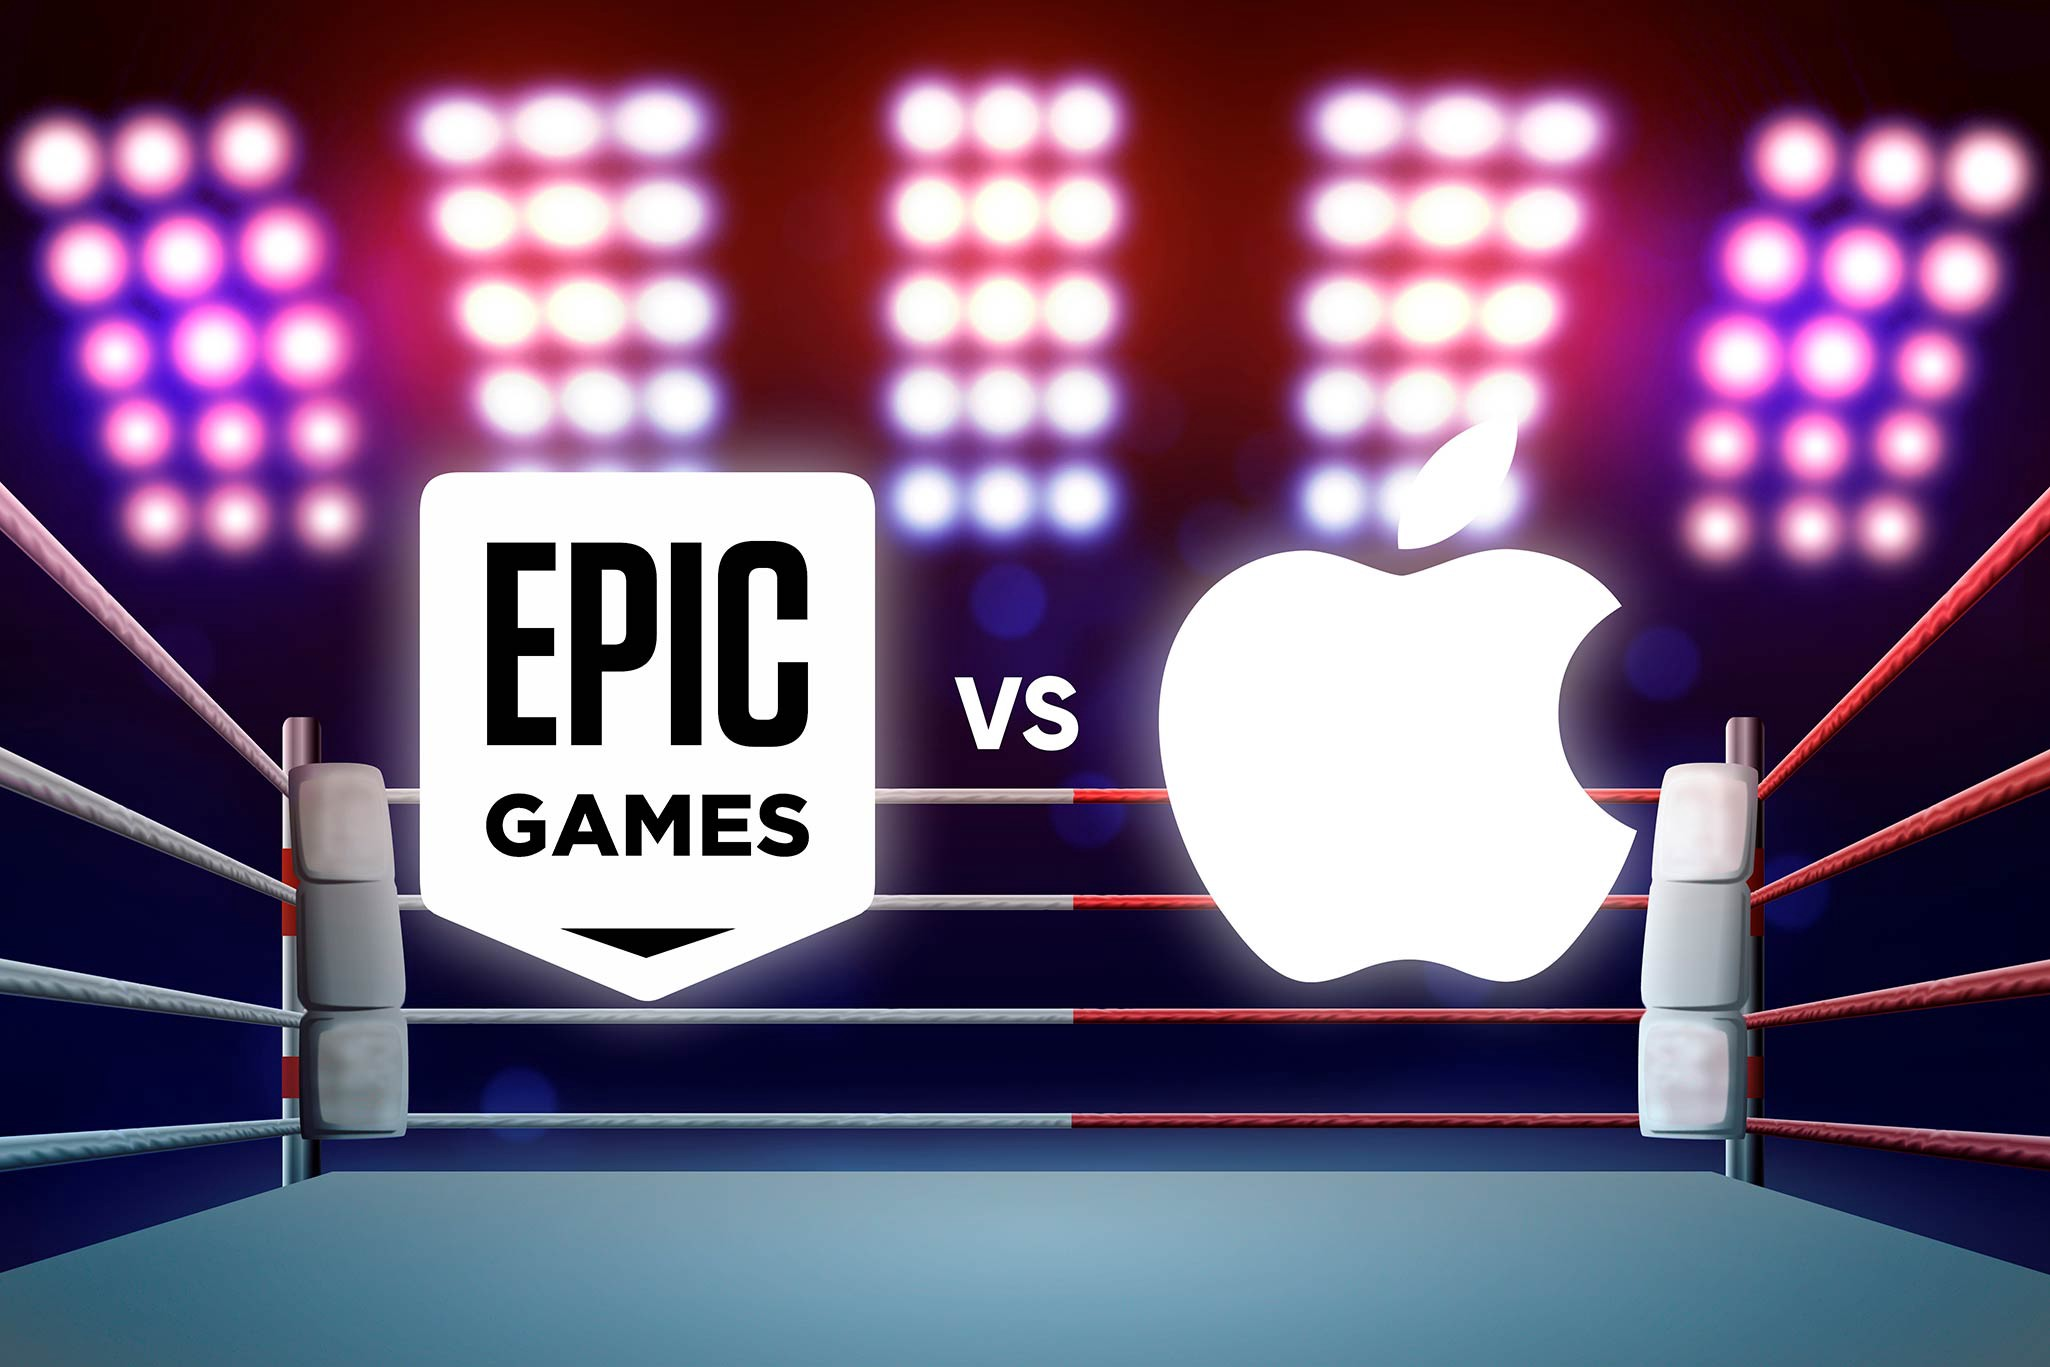 epic-vs-apple-the-anti-trust-lawsuit-that-might-change-the-digital-ecosystem